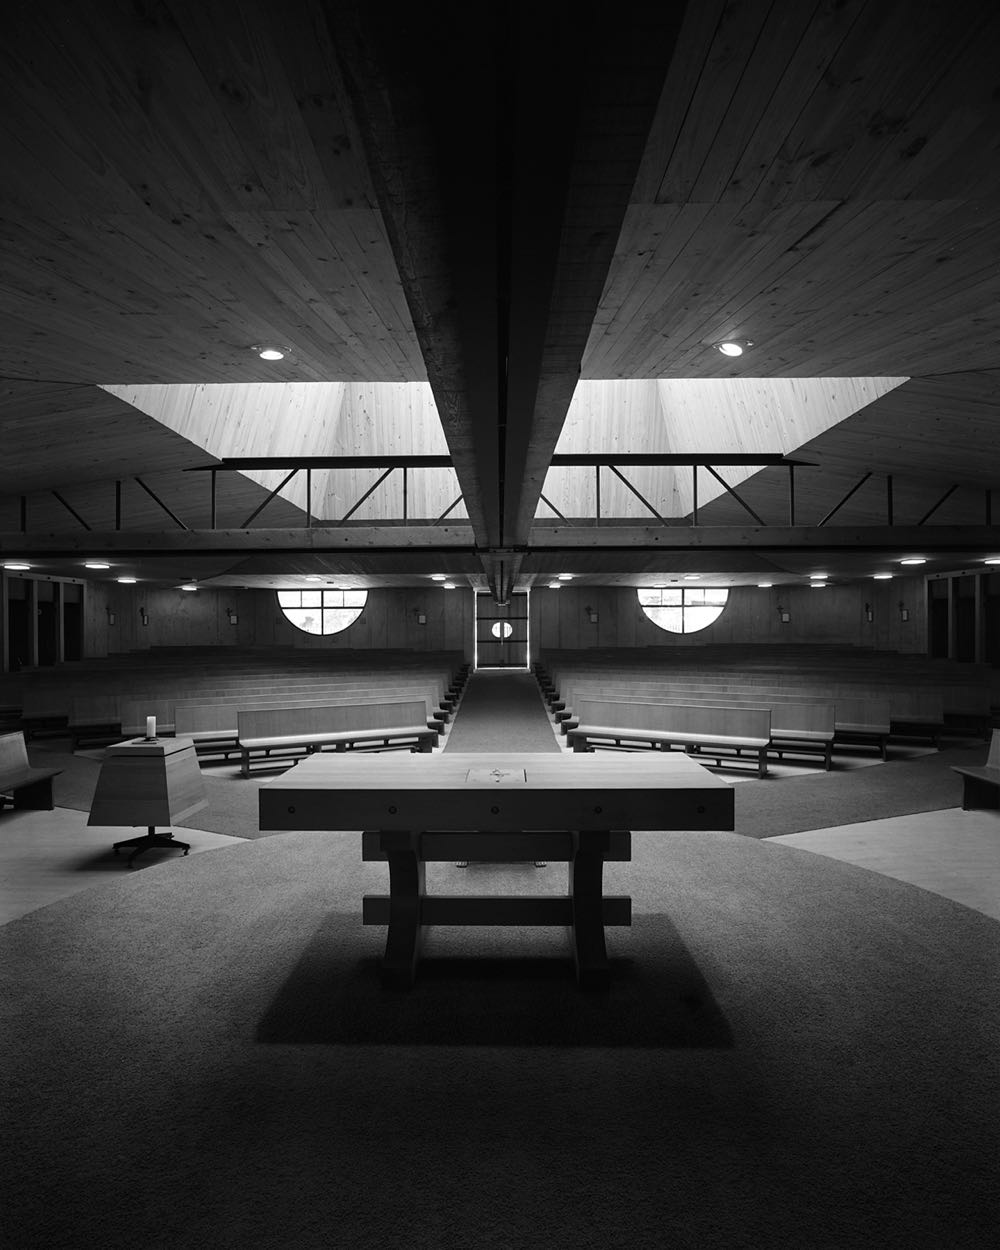 Church of St Anthony's designed by Enrico Taglietti in Marsfield Sydney (1968). Photograph by Max Dupain.